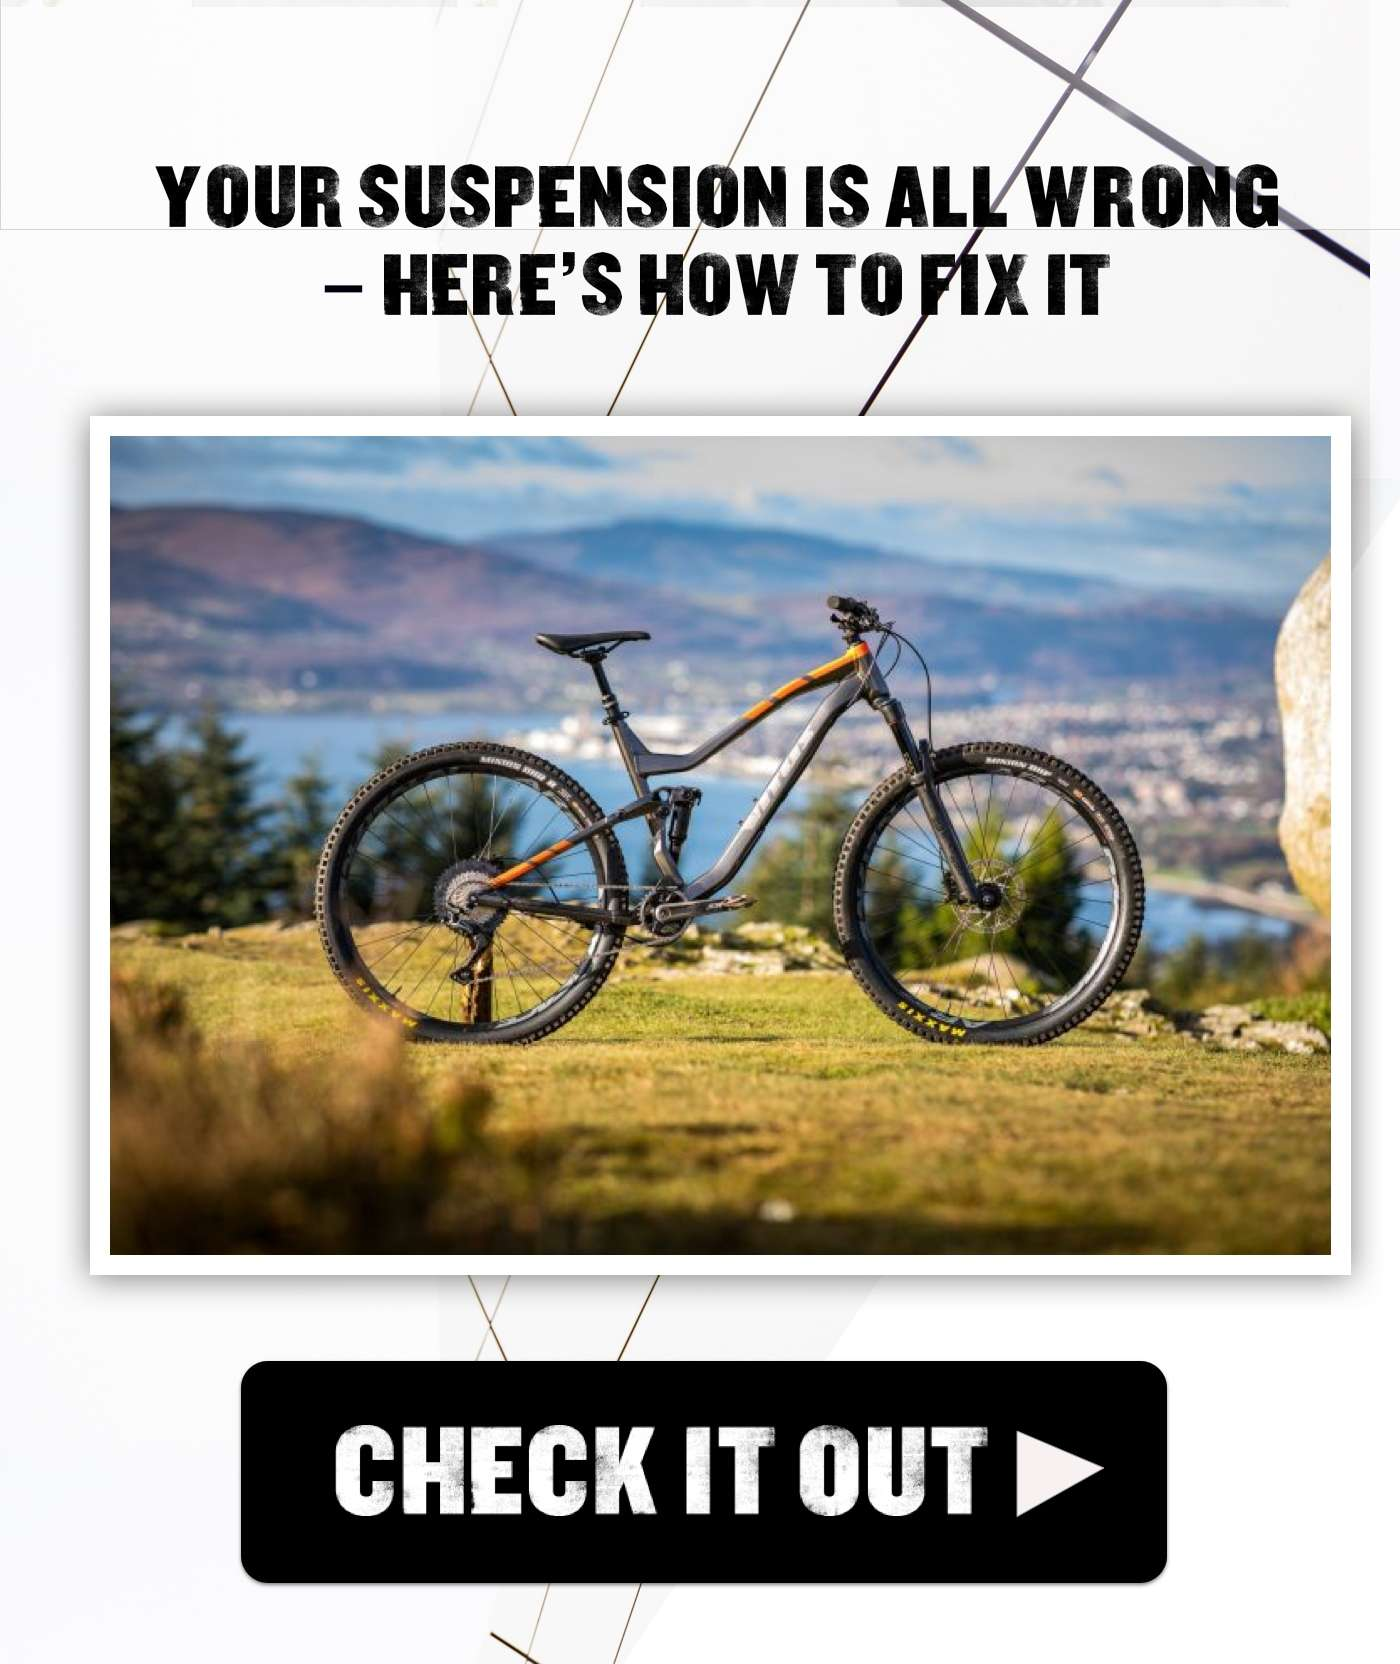 Your suspension is all wrong – here's how to fix it